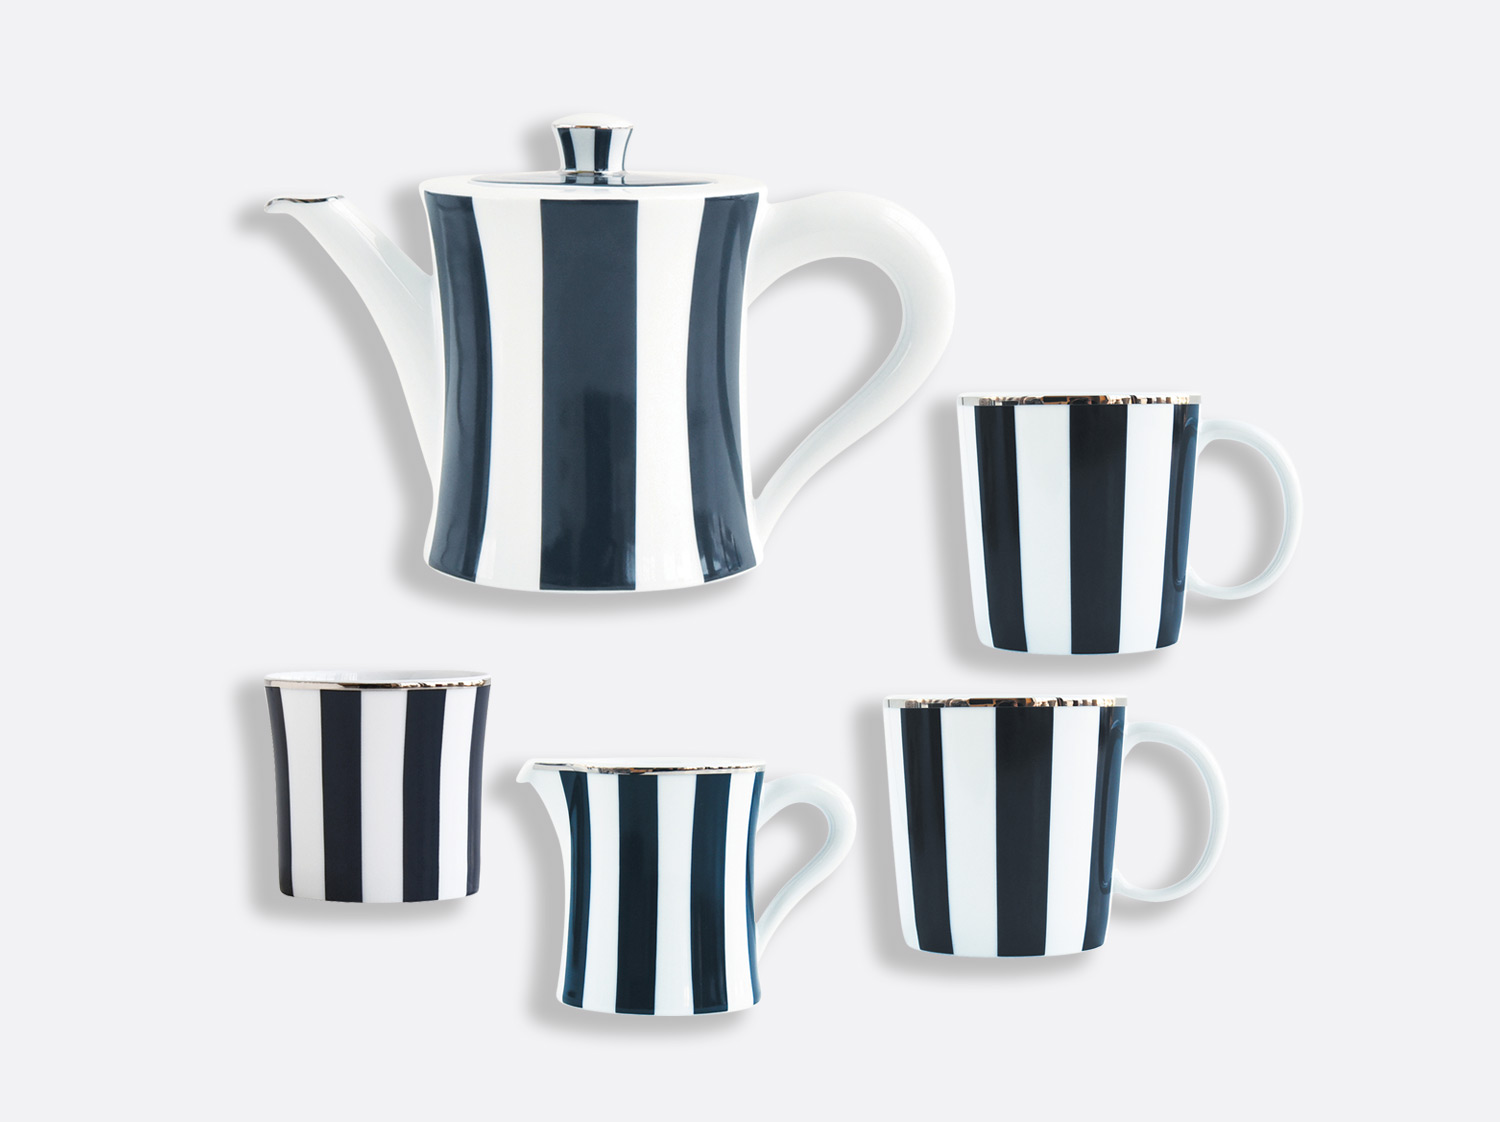 China Set of 1 teapot, 2 mugs, 1 small tumbler, 1 creamer of the collection Galerie Royale Bleu Nuit | Bernardaud